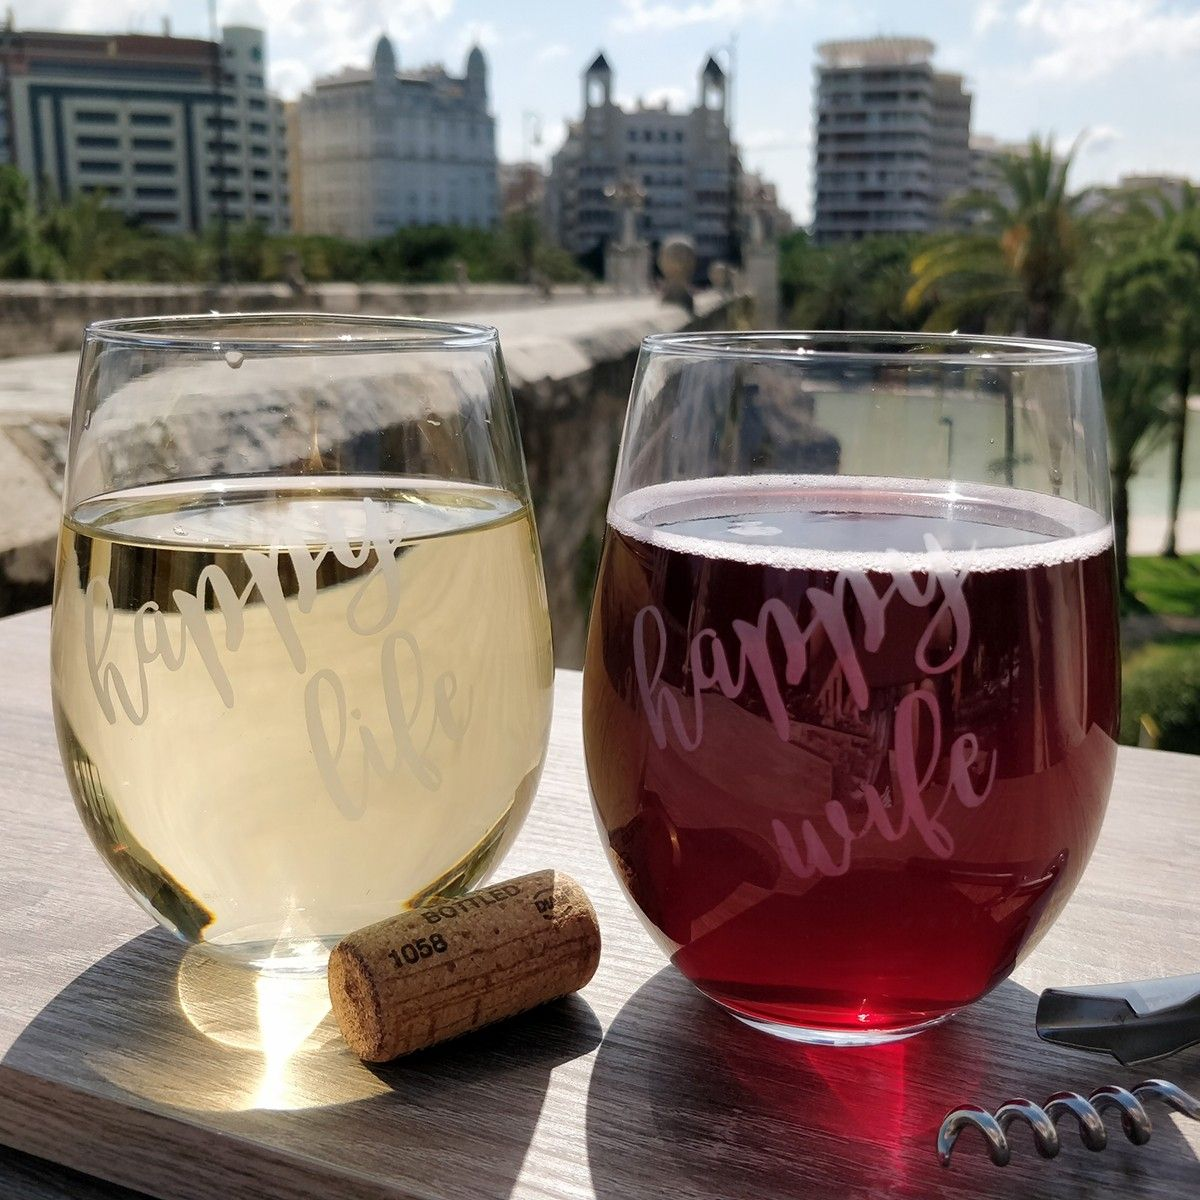 Funny happy wife happy life wine glasses his and hers